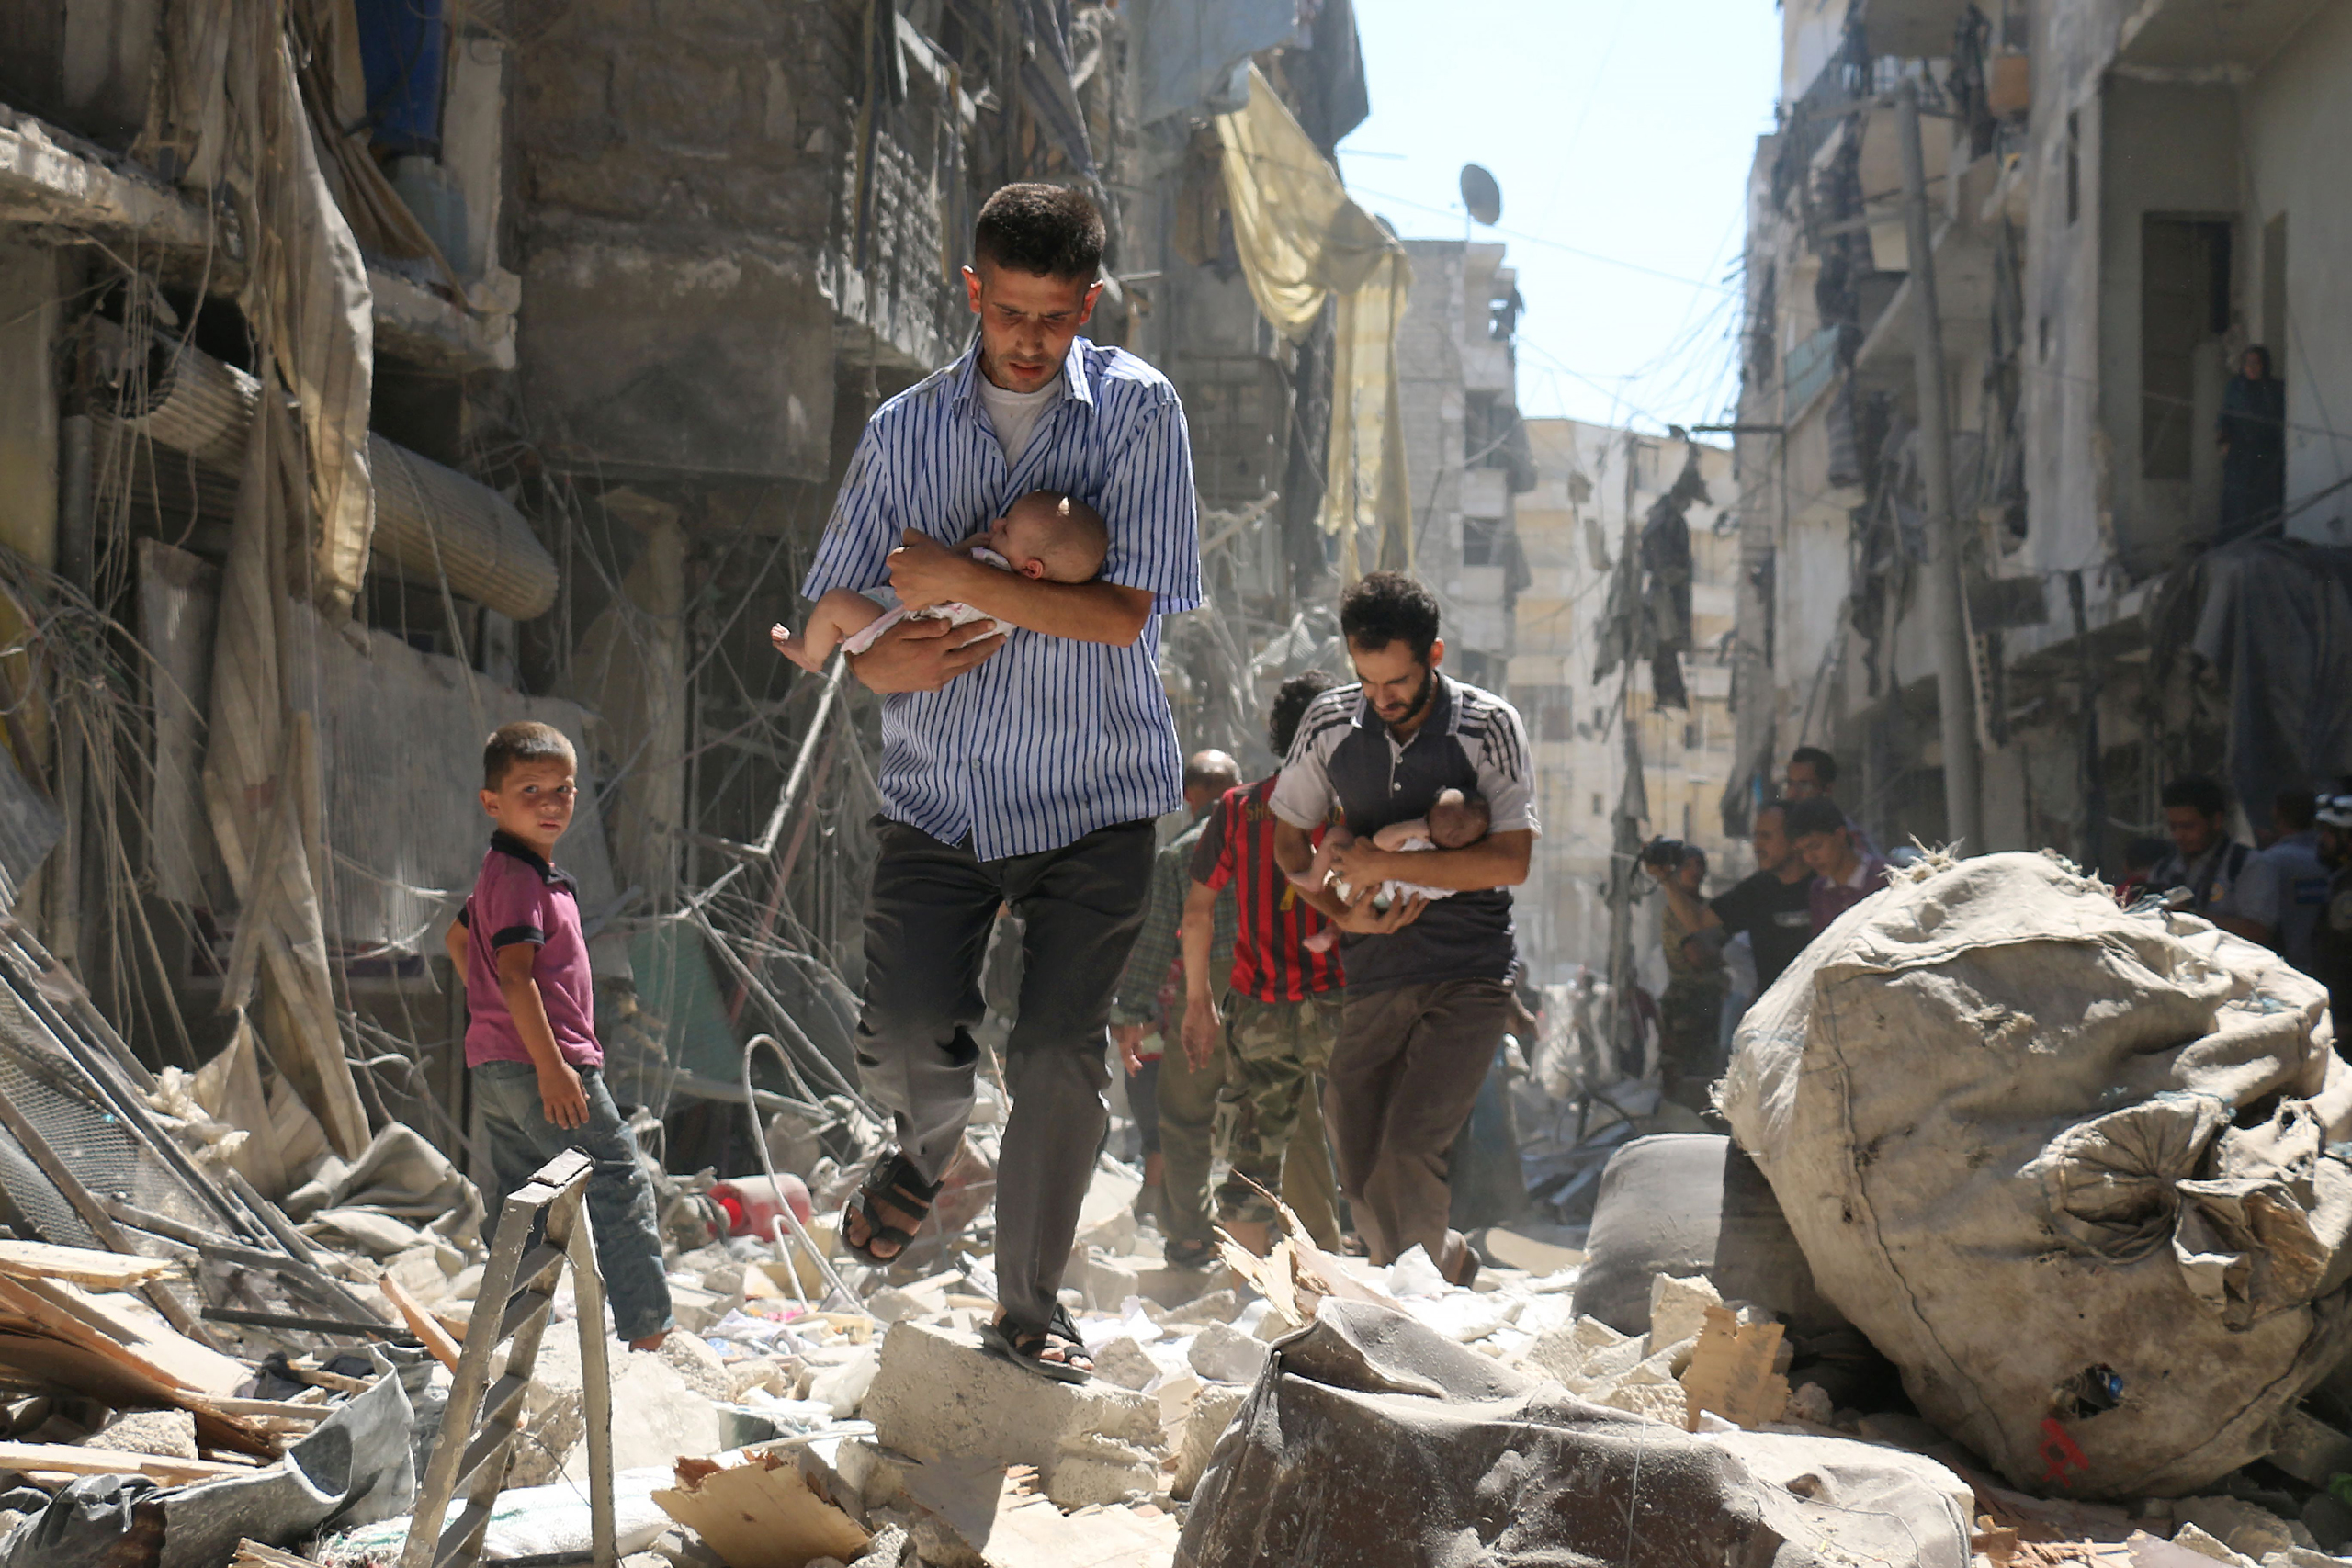 Syrian men carrying babies make their way through the rubble of destroyed buildings following a reported airstrike on the rebel-held Salihin neighborhood of Aleppo on Sept. 11, 2016.